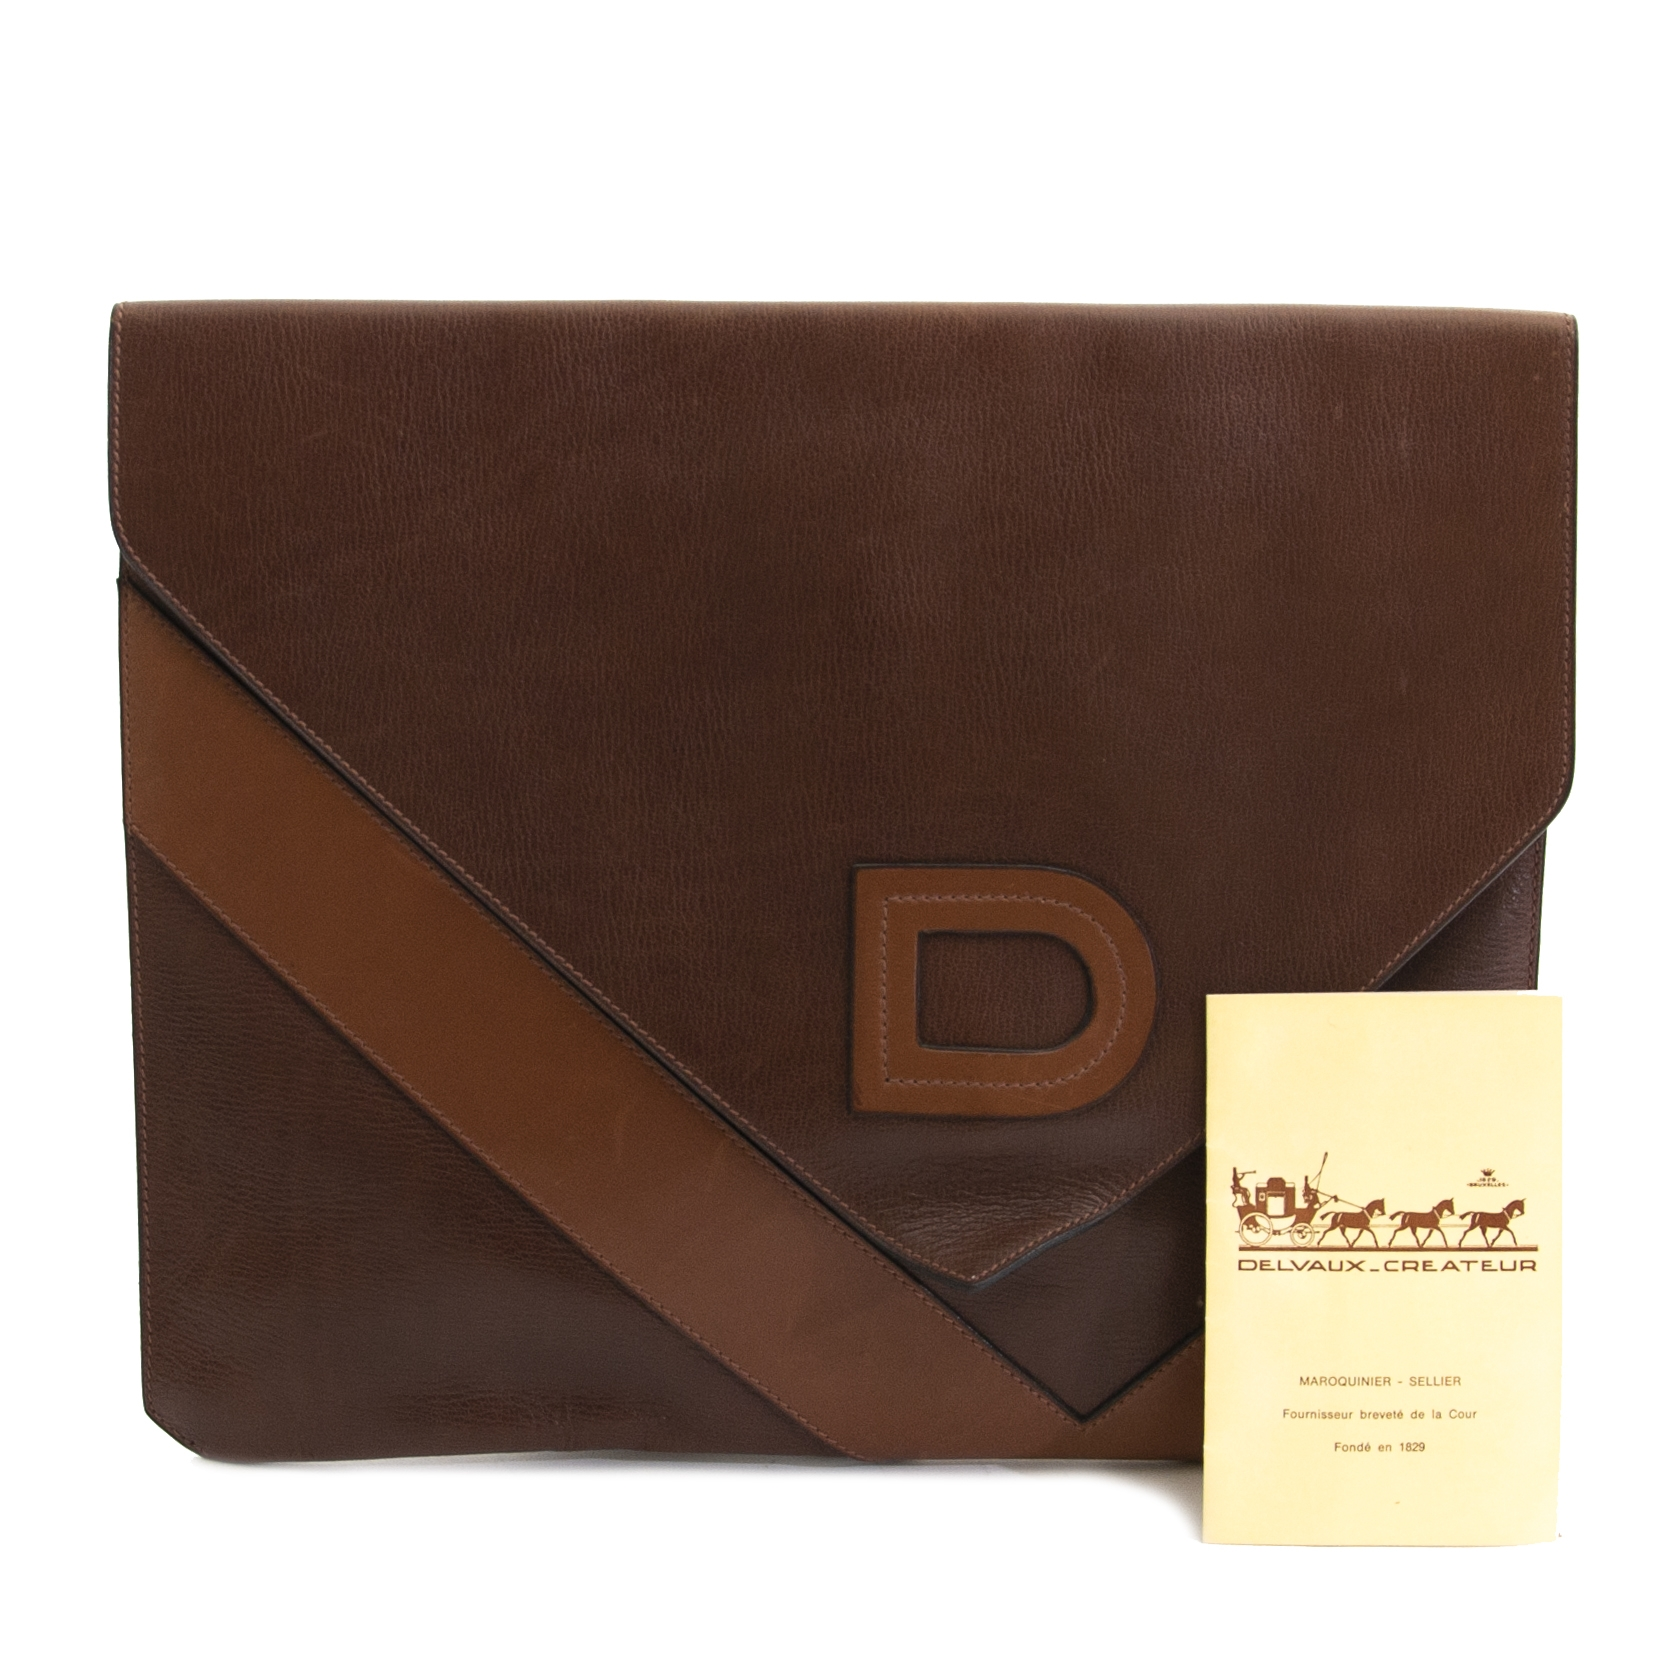 Delvaux Efficace Brown Leather Portfolio Clutch available at the best price at Labellov